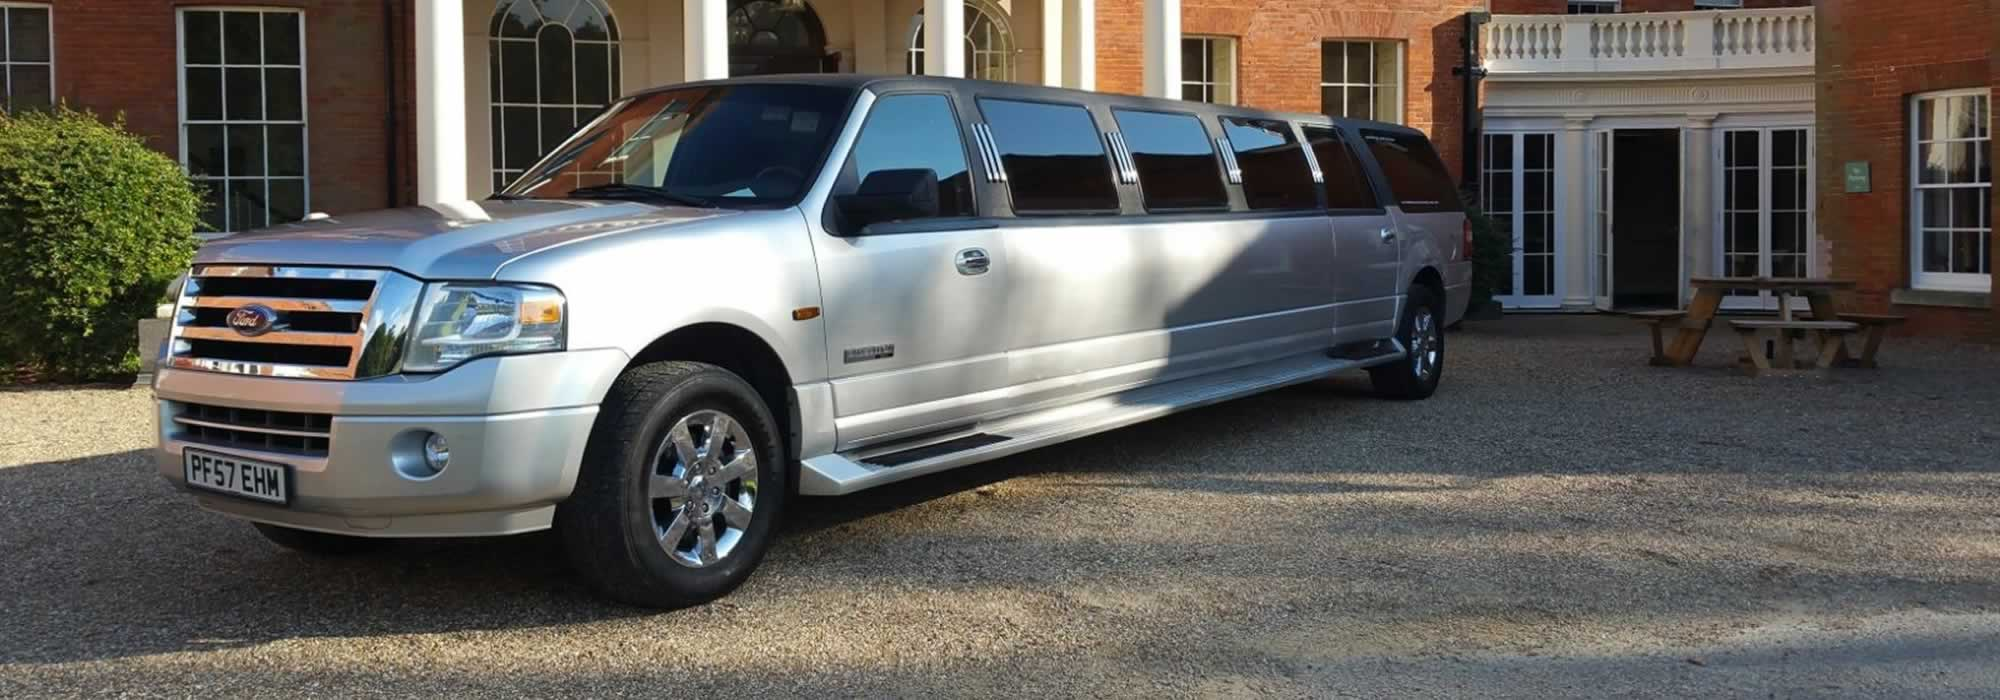 Ford Expedition limo hire